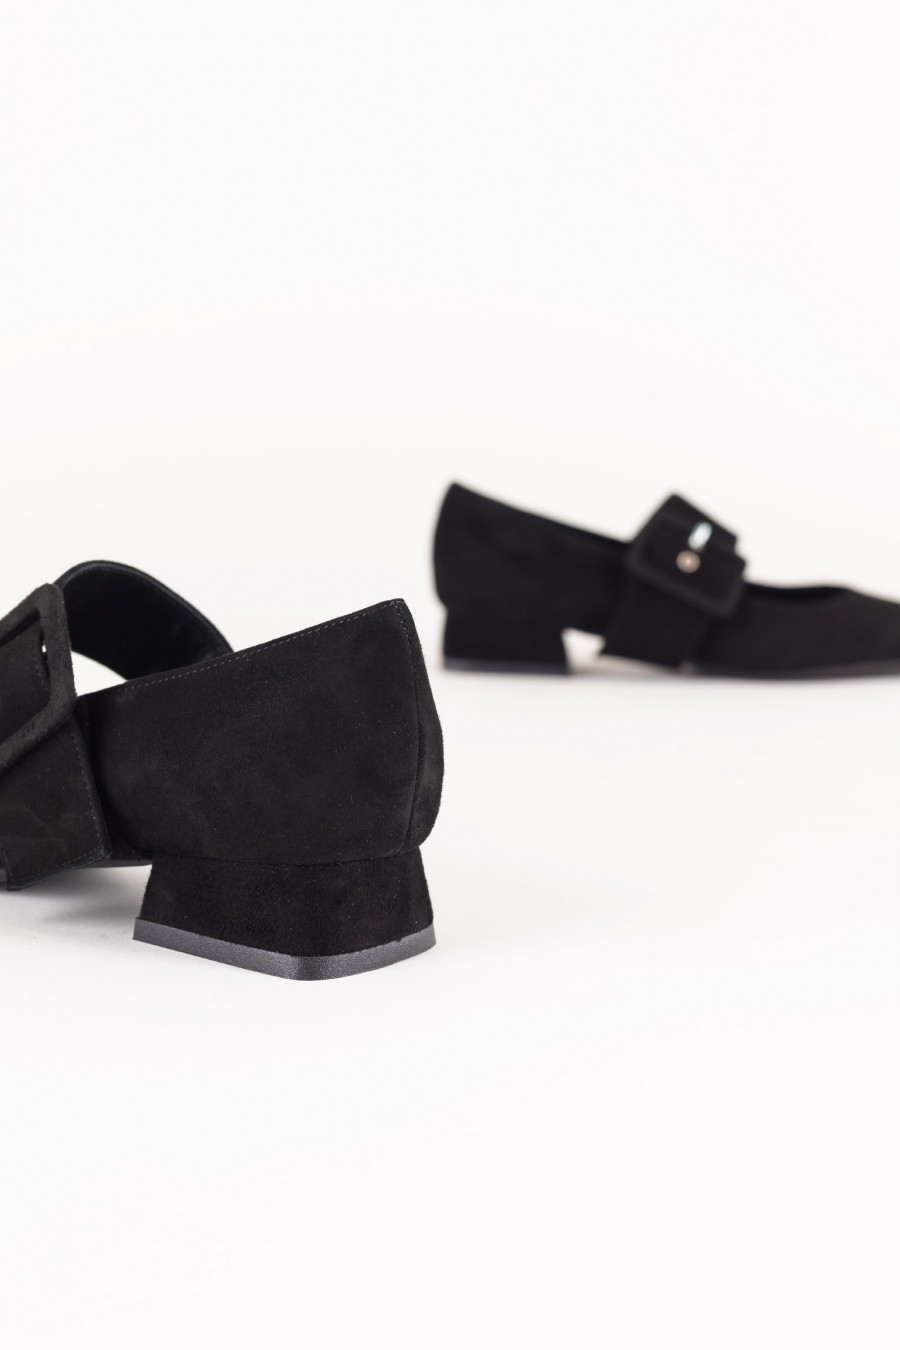 Suede black Mary Jane with buckle